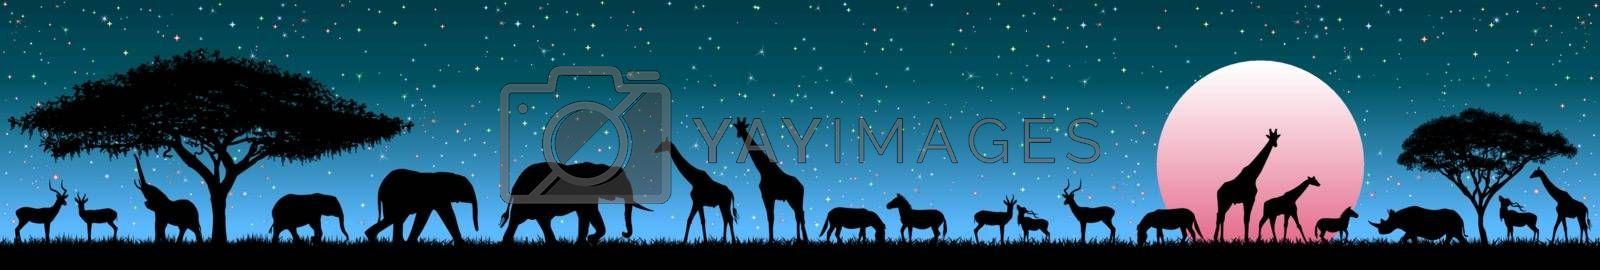 Silhouettes of wild animals of the African savannah. Set of different wild animals of Africa. African animals against the starry sky and the rising sun.